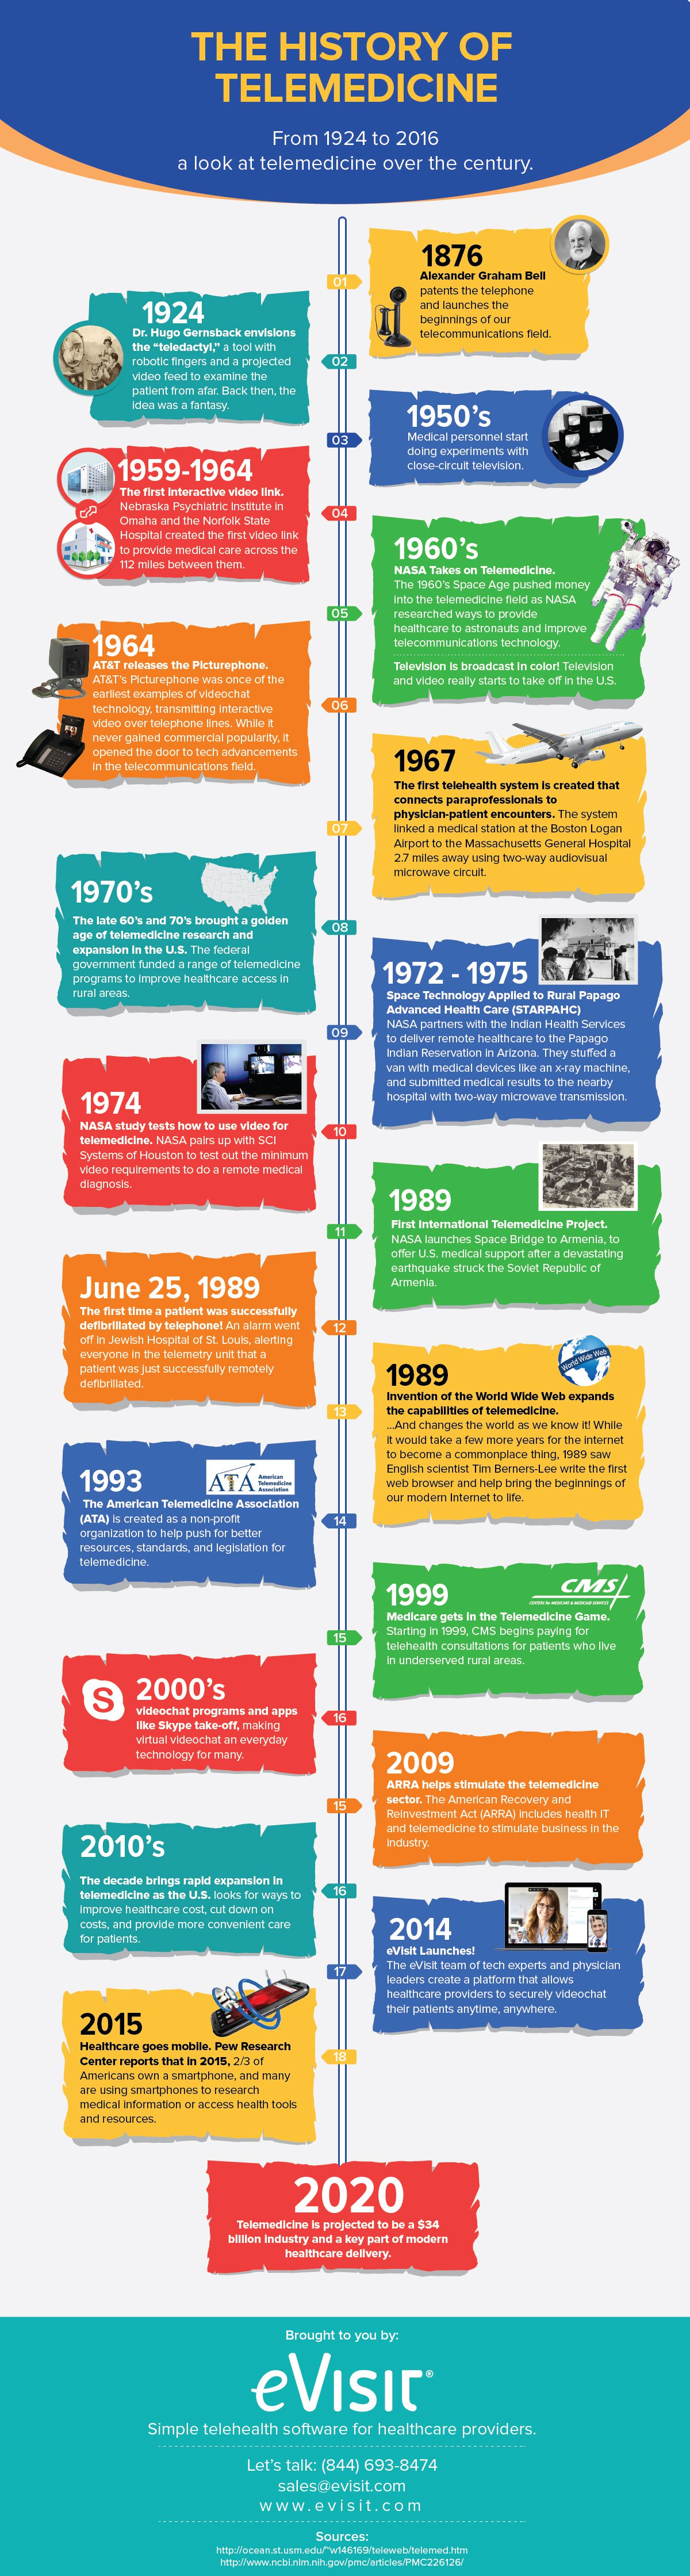 Evisit-History-of-Telemedicine-Infographic.jpg